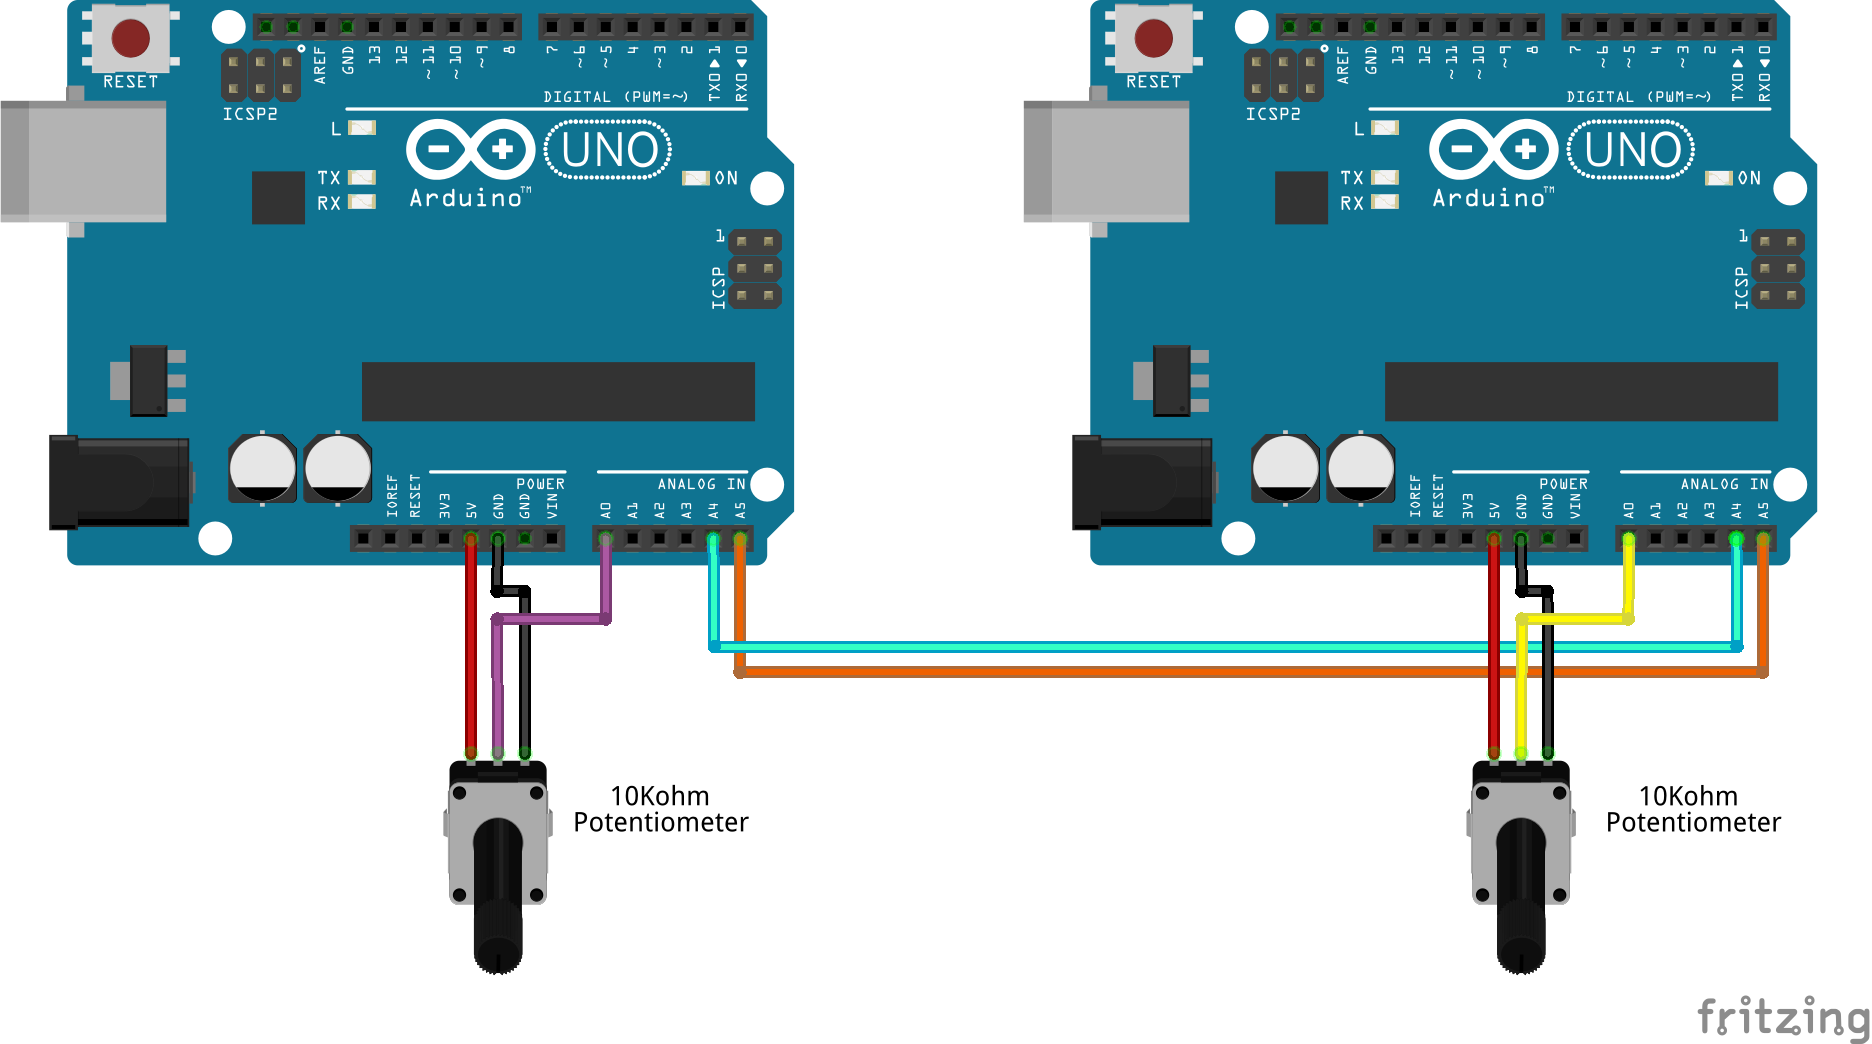 How to Setup I2C Communication on the Arduino